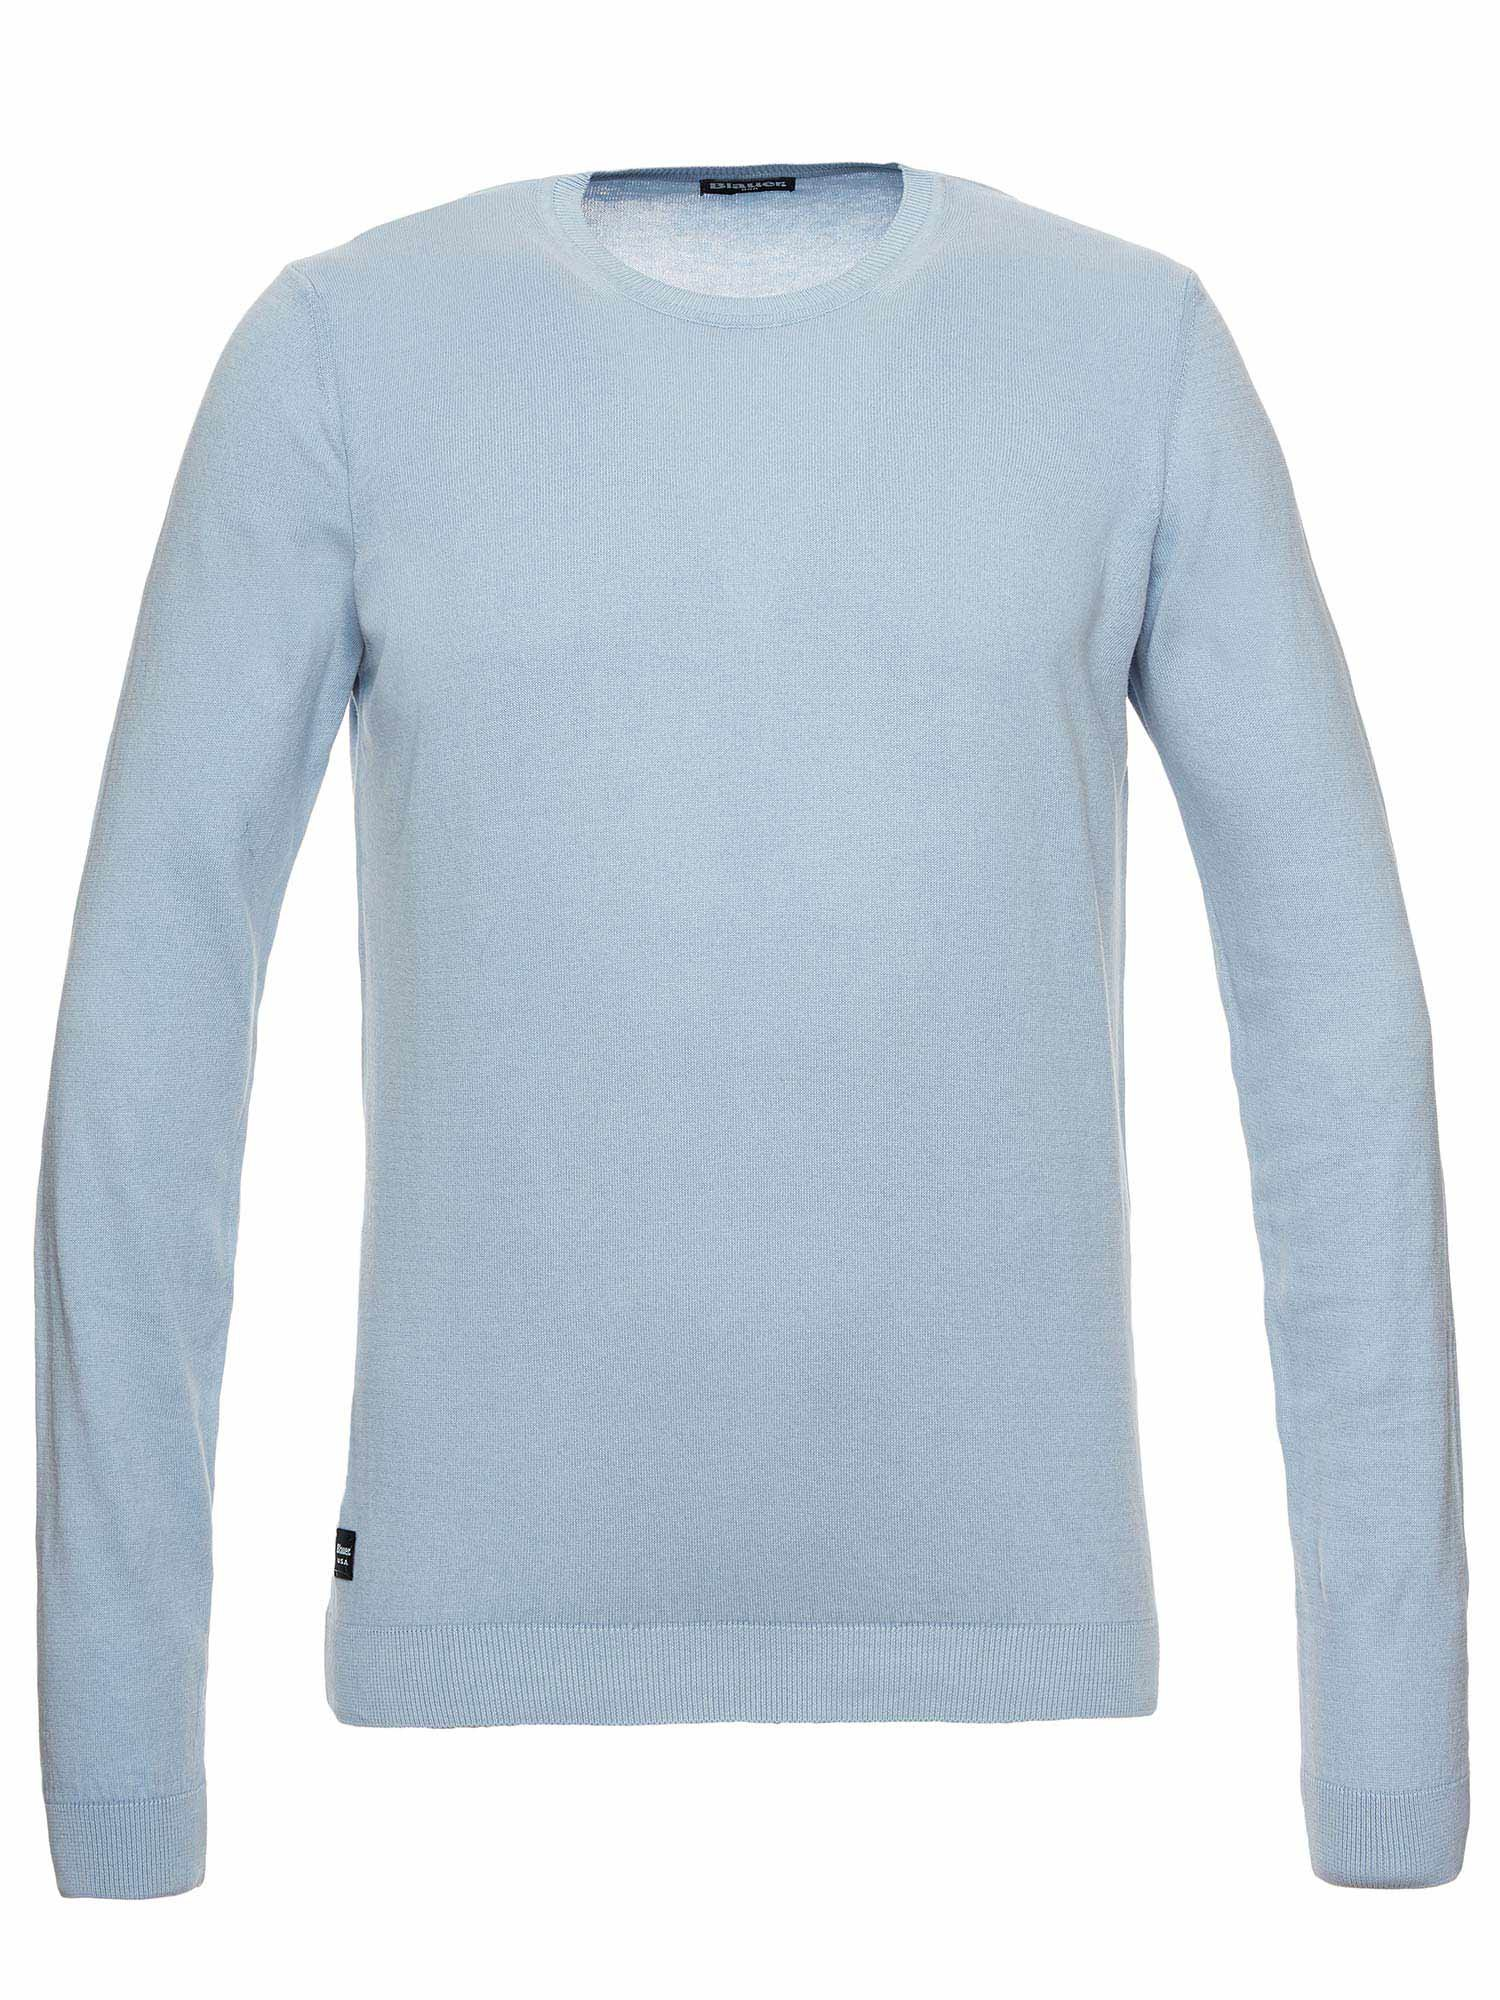 COTTON CREW NECK SWEATER - Blauer